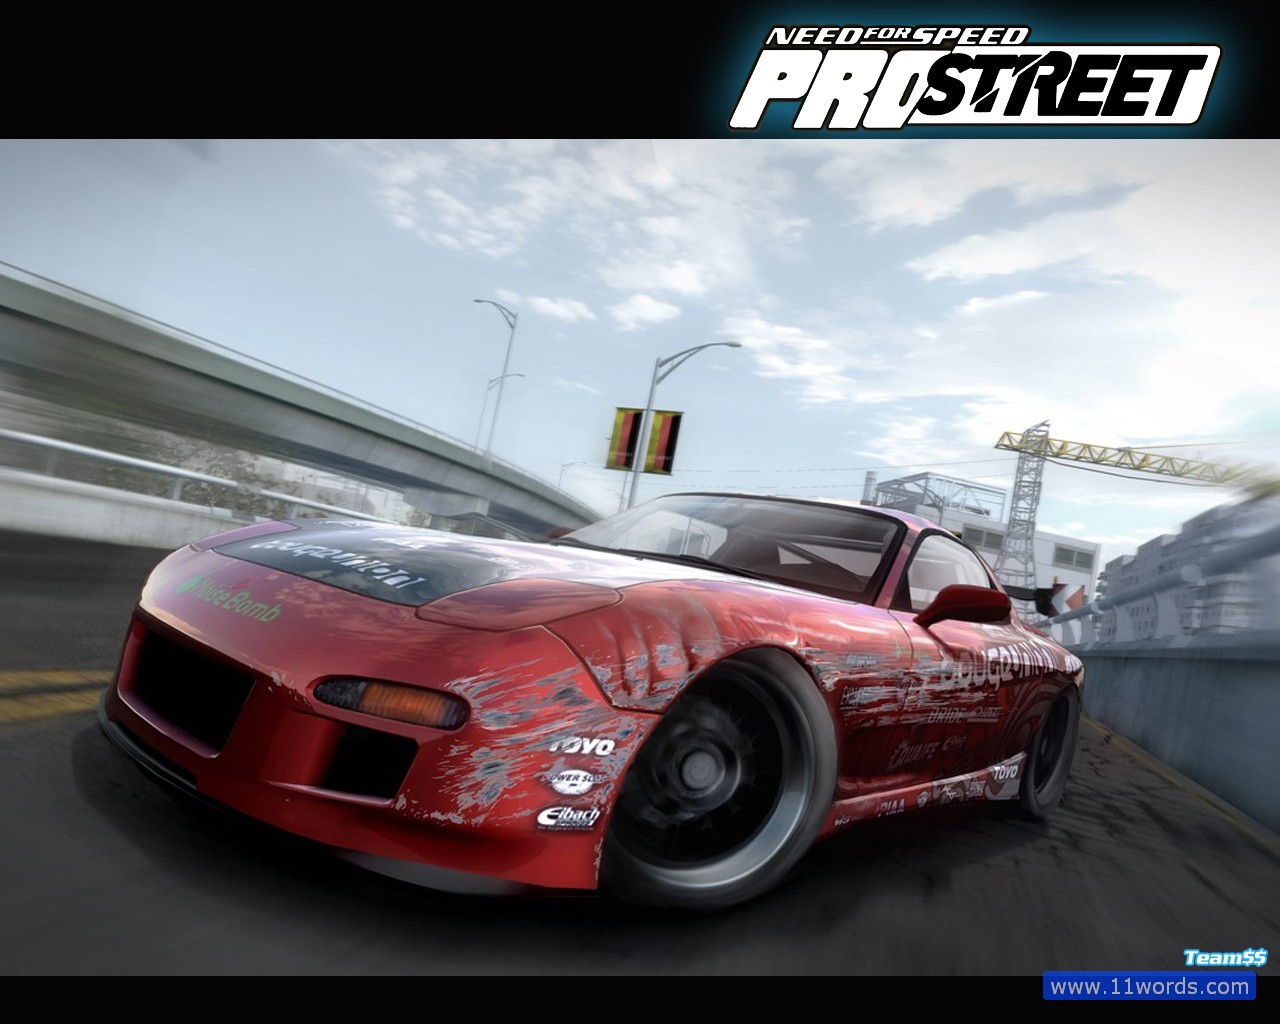 need for speed pro street wallpapers hd |wallpapers hd|wallpapers